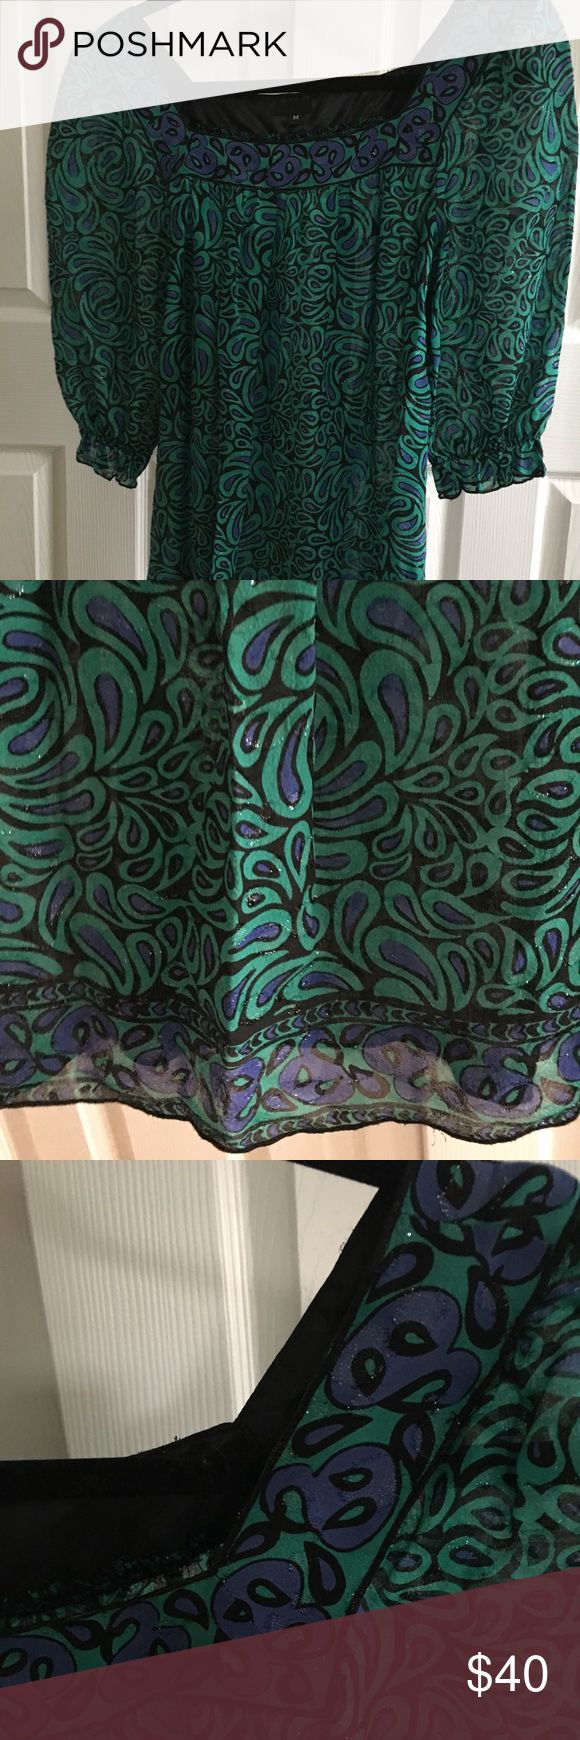 Silky Anna Sui Top Teal and blue Anna Sui Top. Semi sheer, though can be worn with no tank underneath. Has metallic bits throughout. Size M. Anna Sui Tops